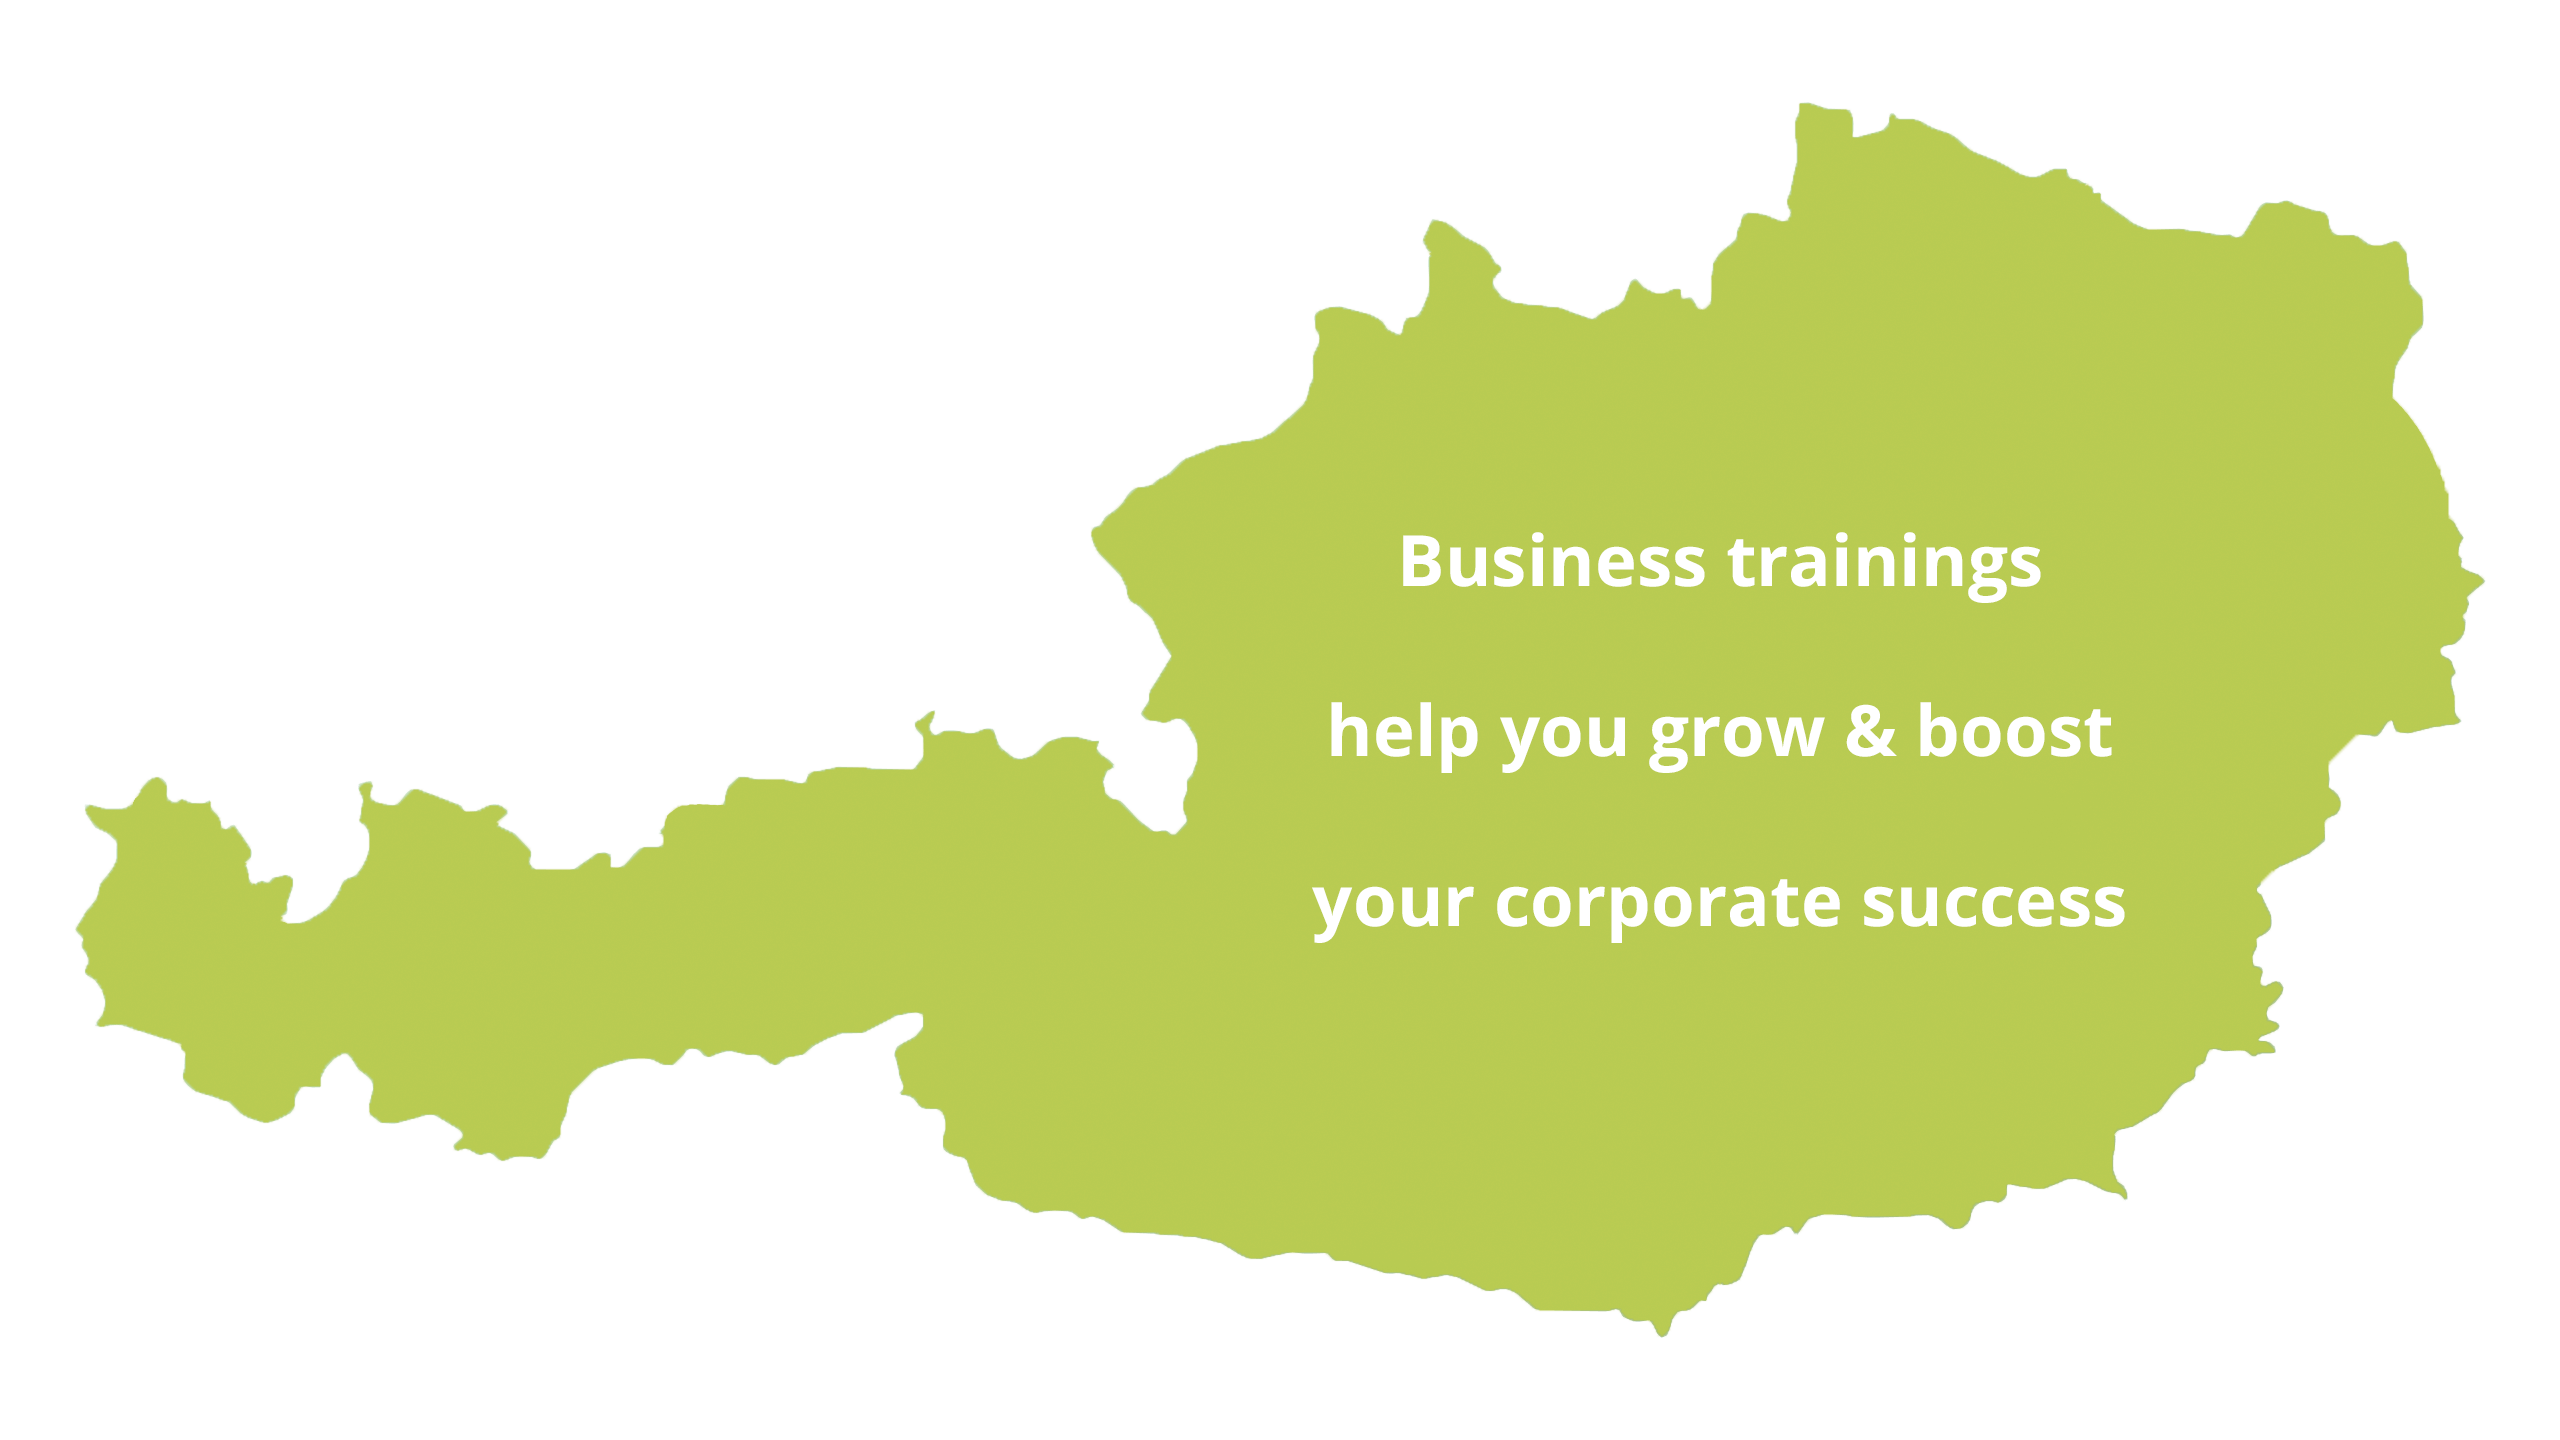 Business Trainings help you boost your corporate success